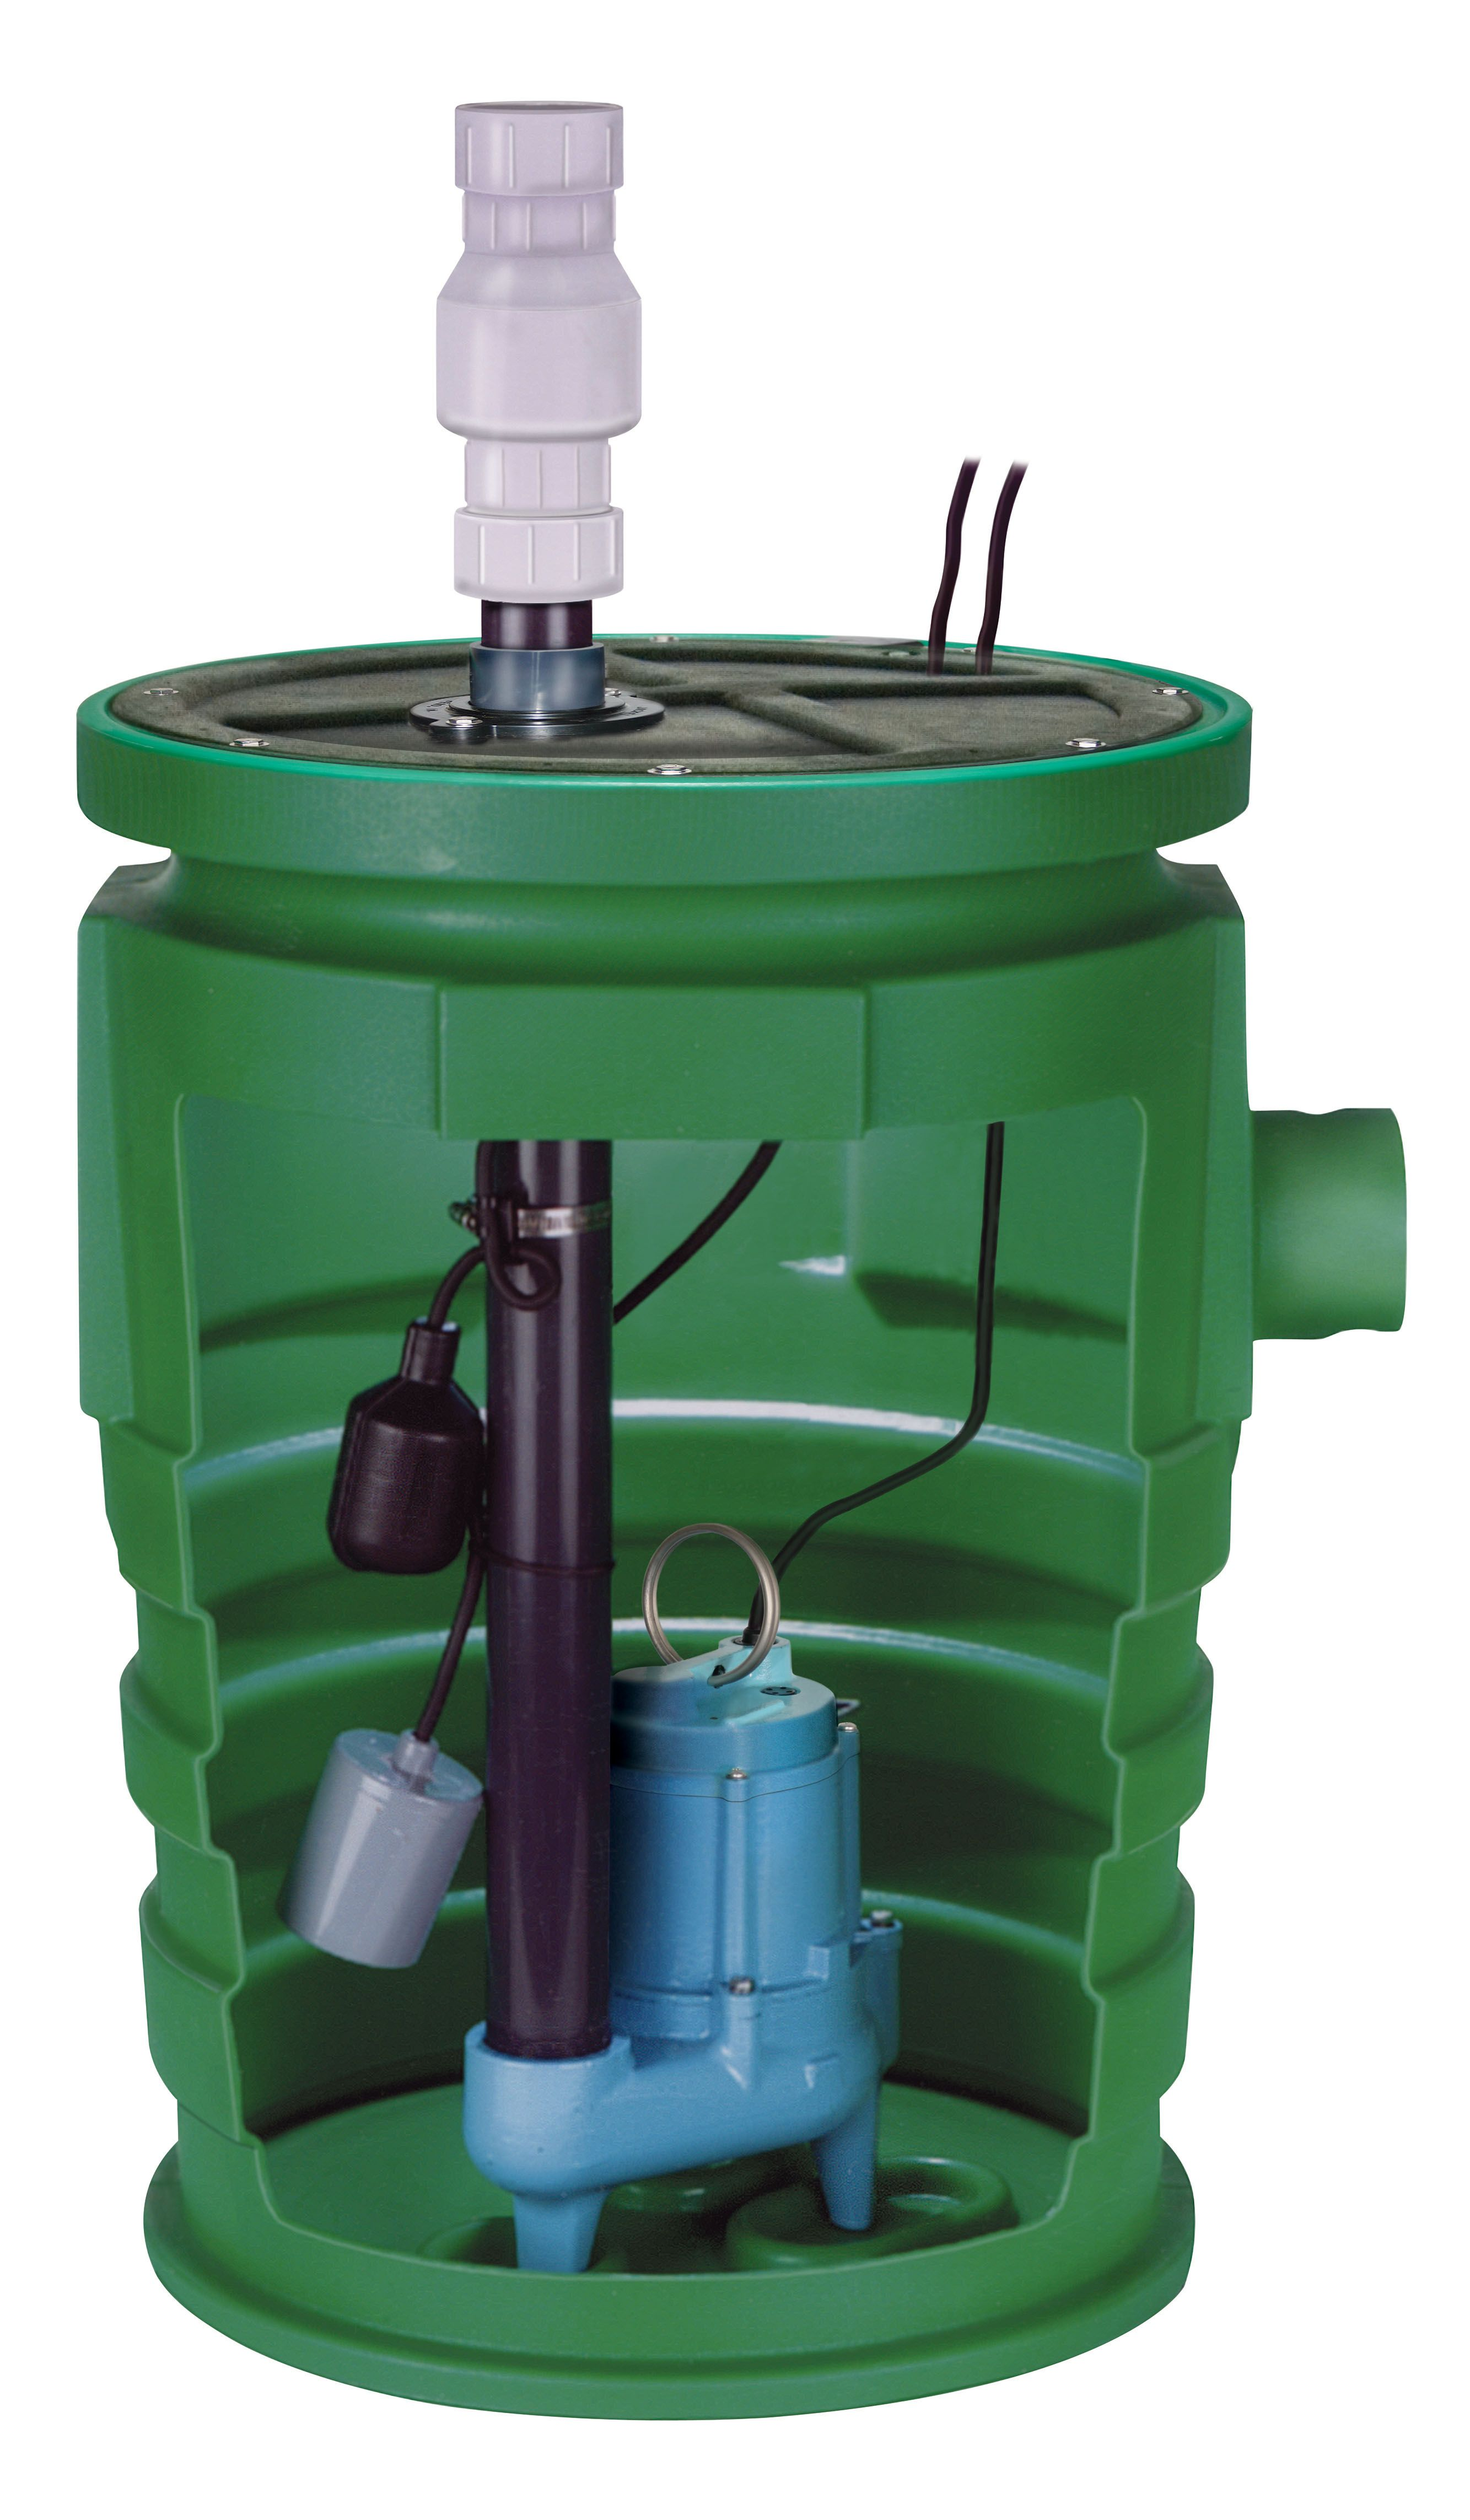 hight resolution of 509115 9s smpx lg1a bc2030csjk sewer pump sewage ejector pump